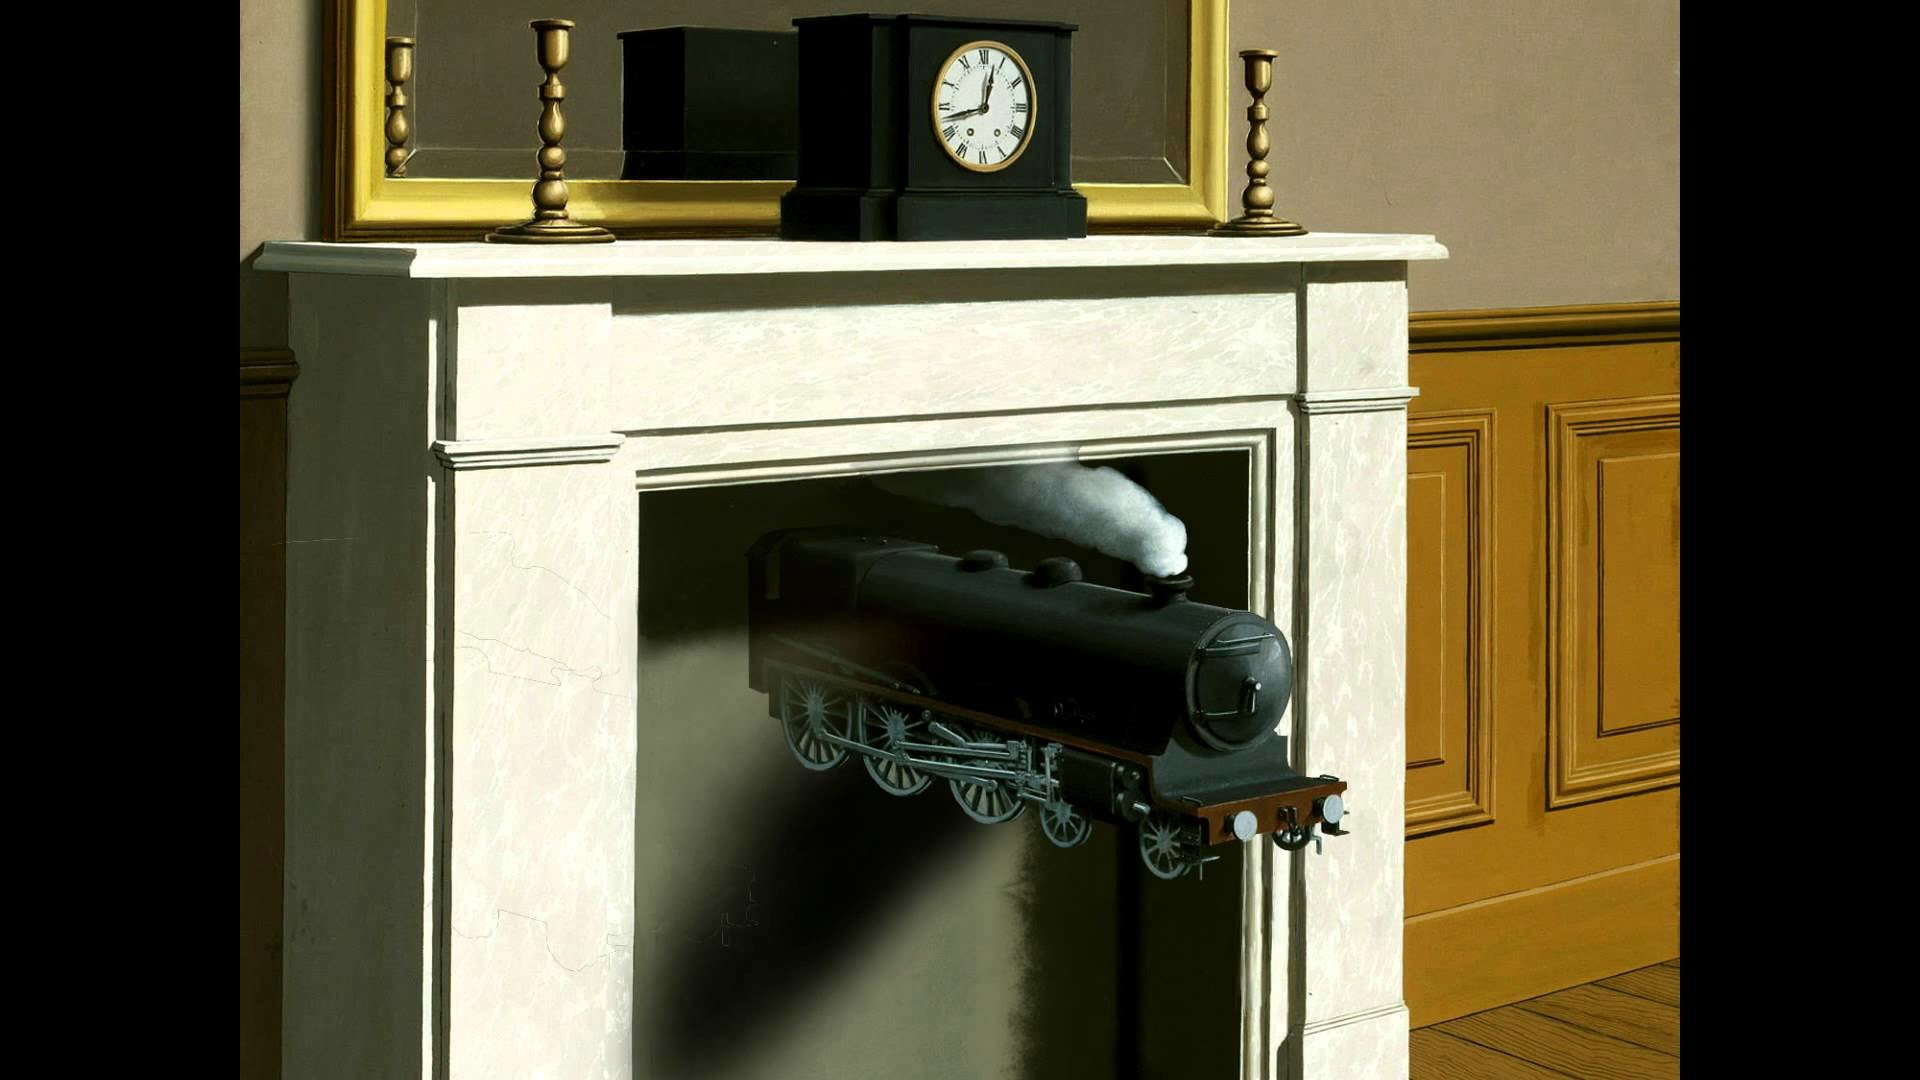 2D-Design Rene Magritte Time Transfixed Trains